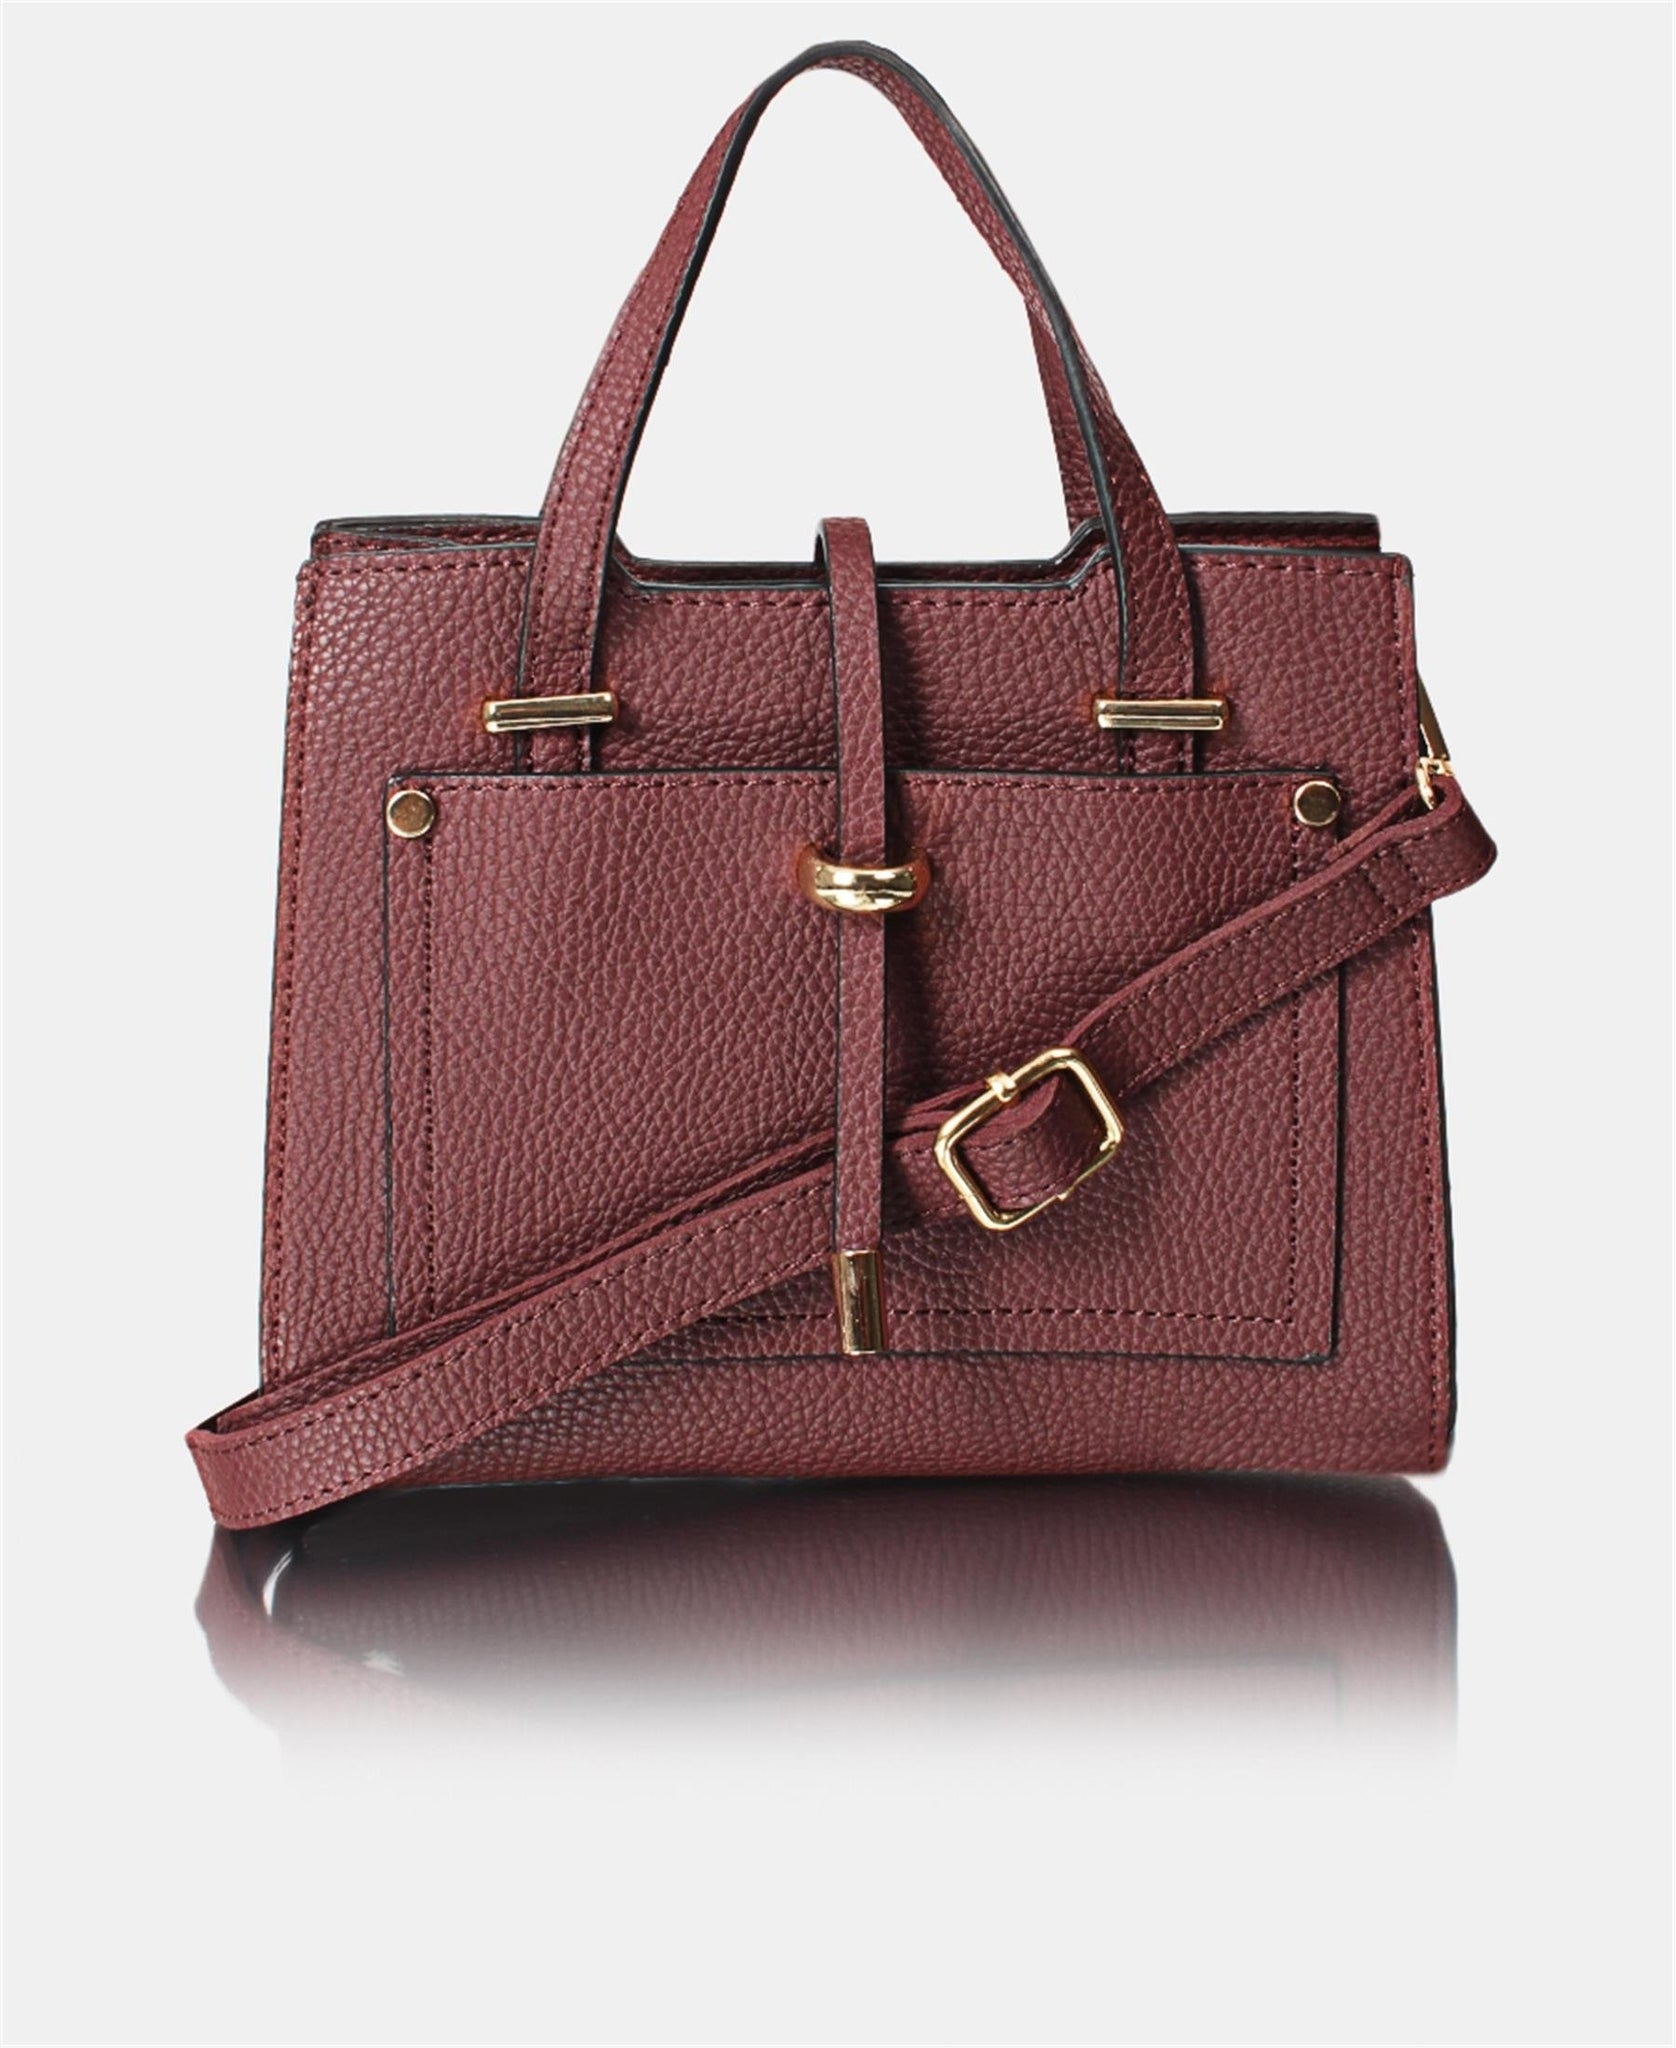 Mini Tote Bag - Burgundy